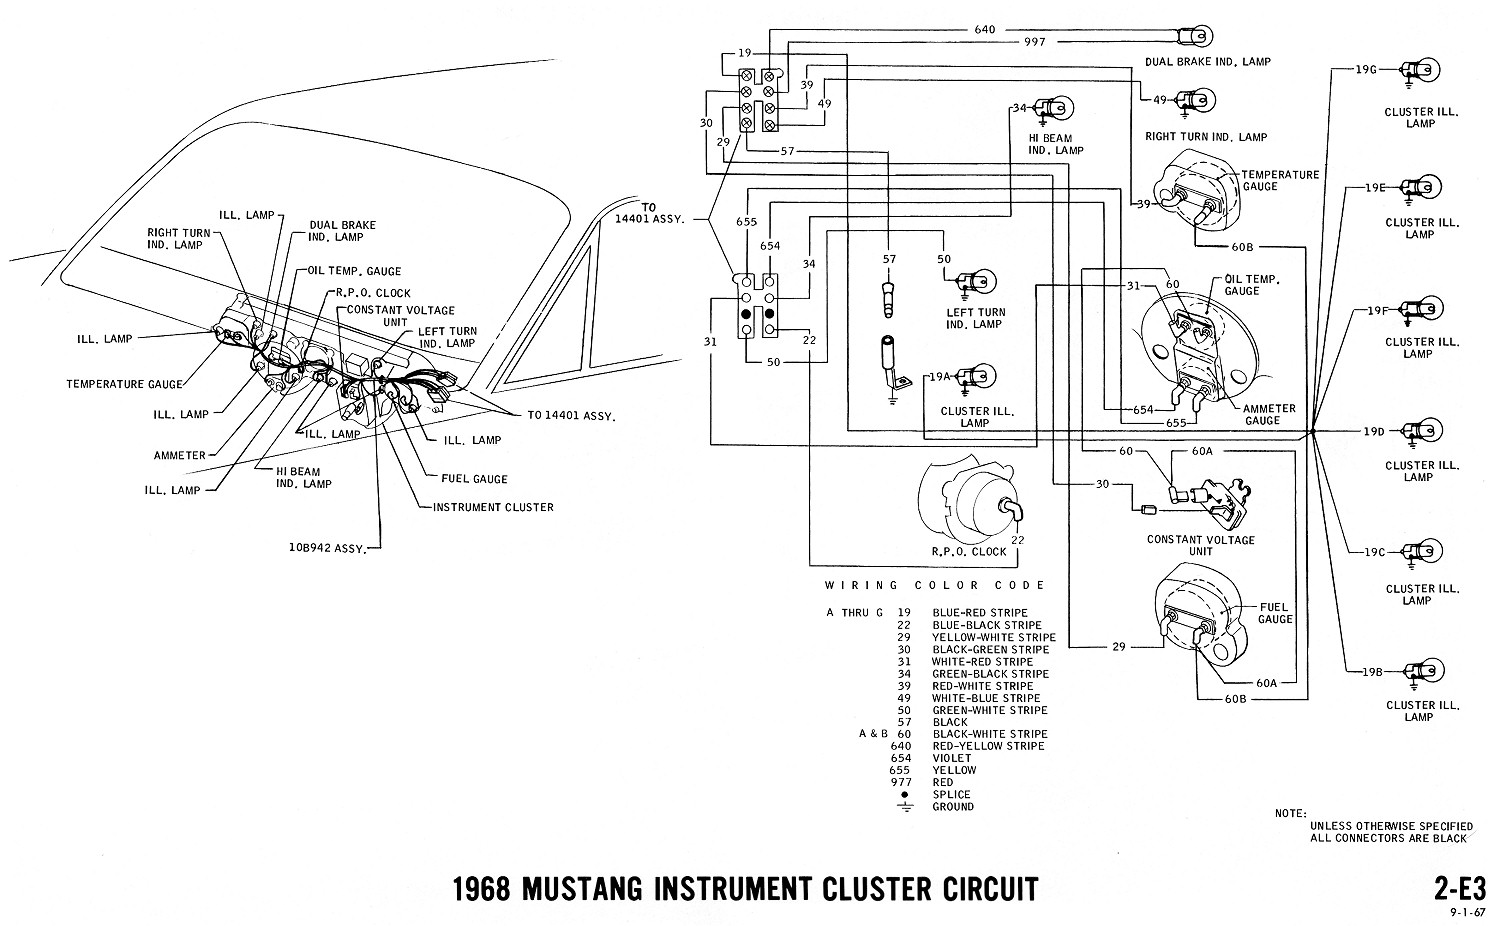 1968 Mustang Wiring Diagrams And Vacuum Schematics Average Joe Camaro Ignition Coil Diagram Instruments